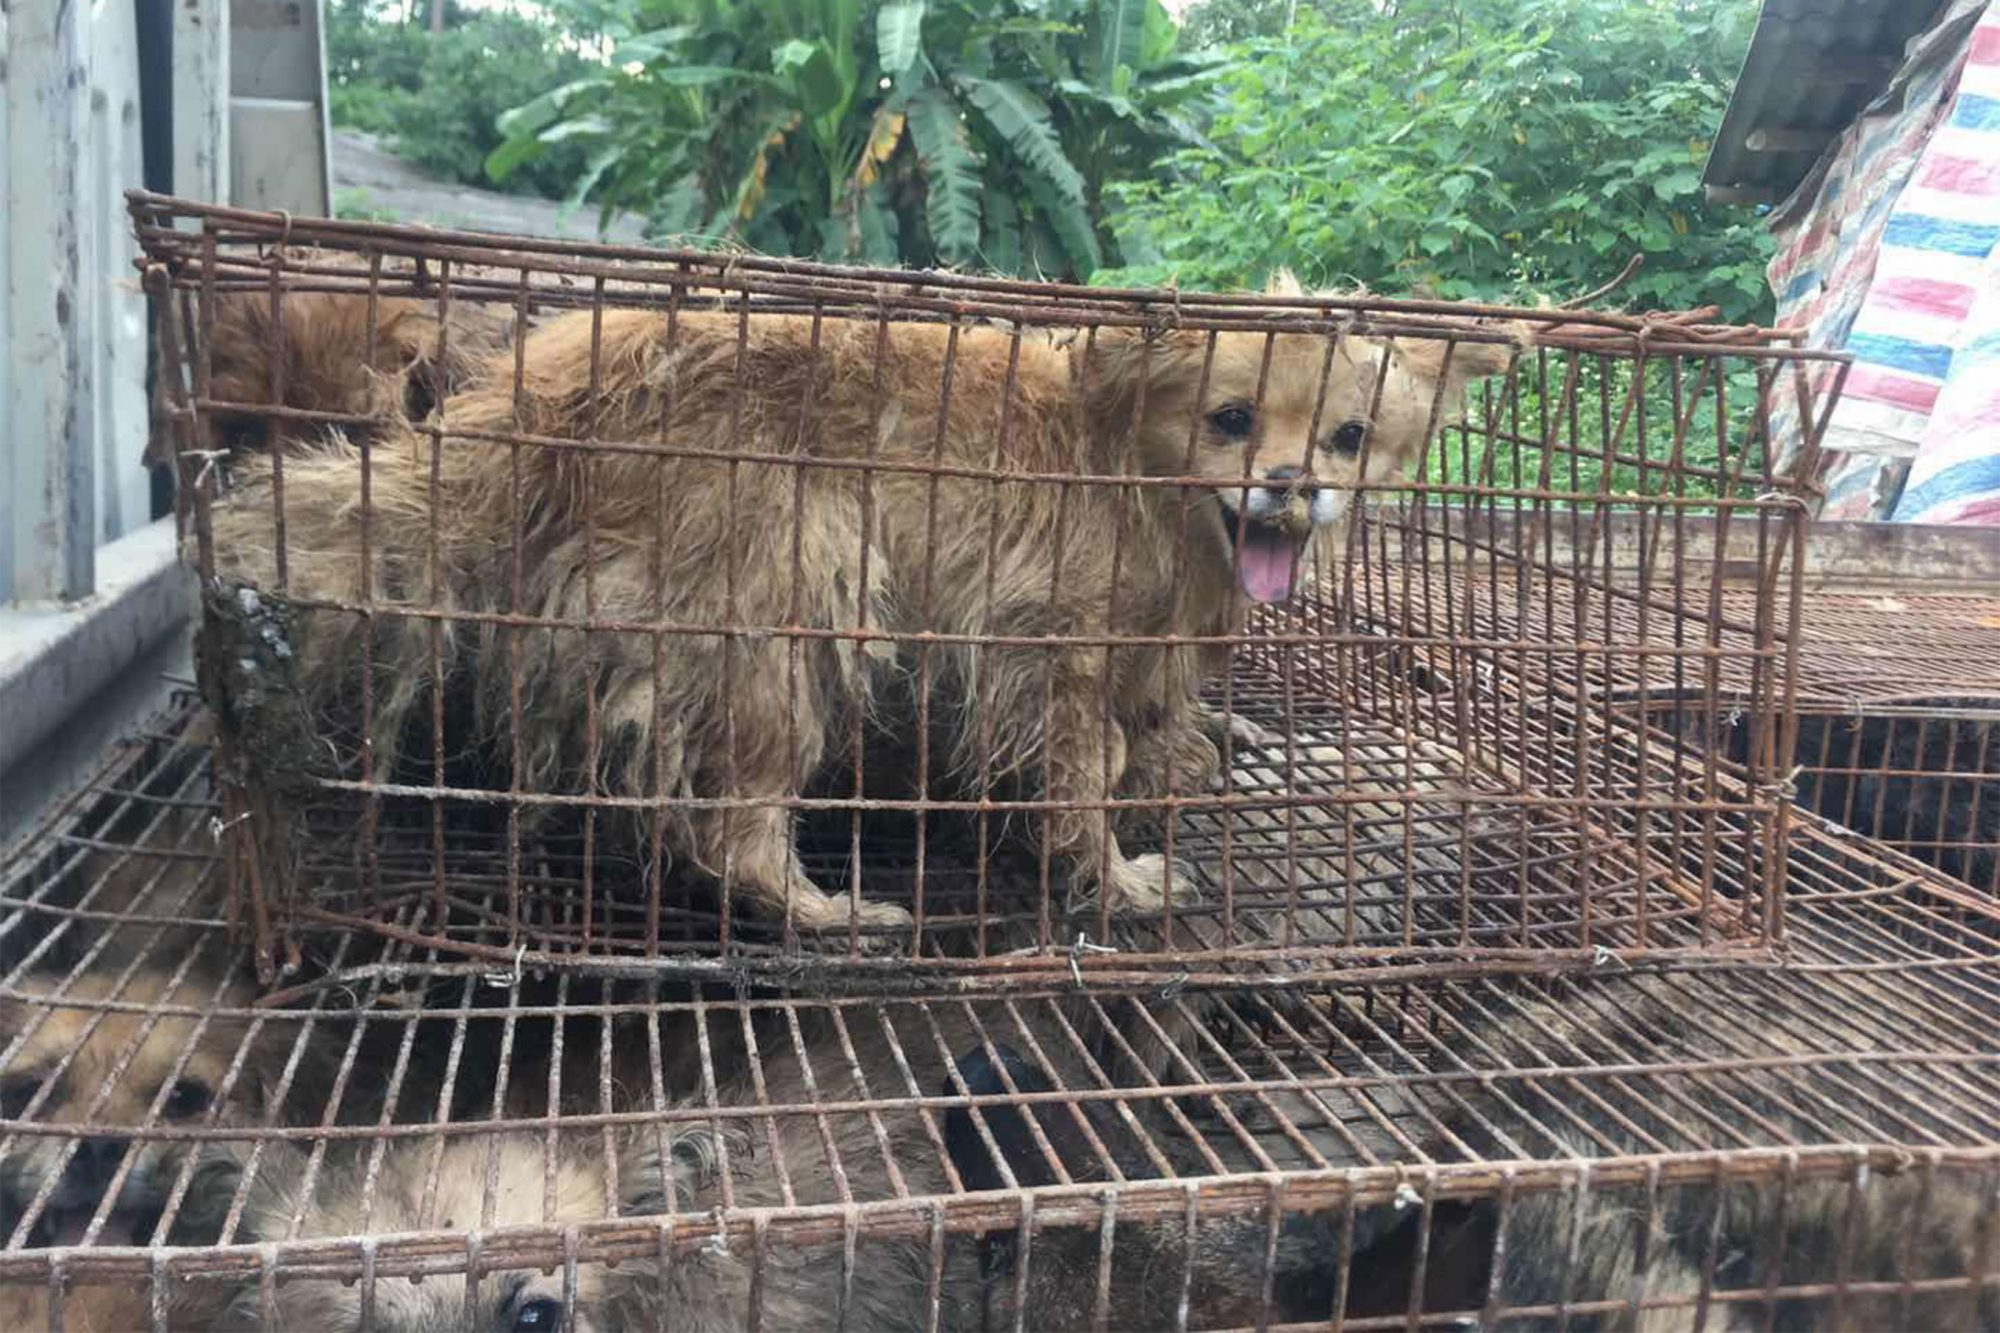 China Dog Meat Slaughterhouse Rescue